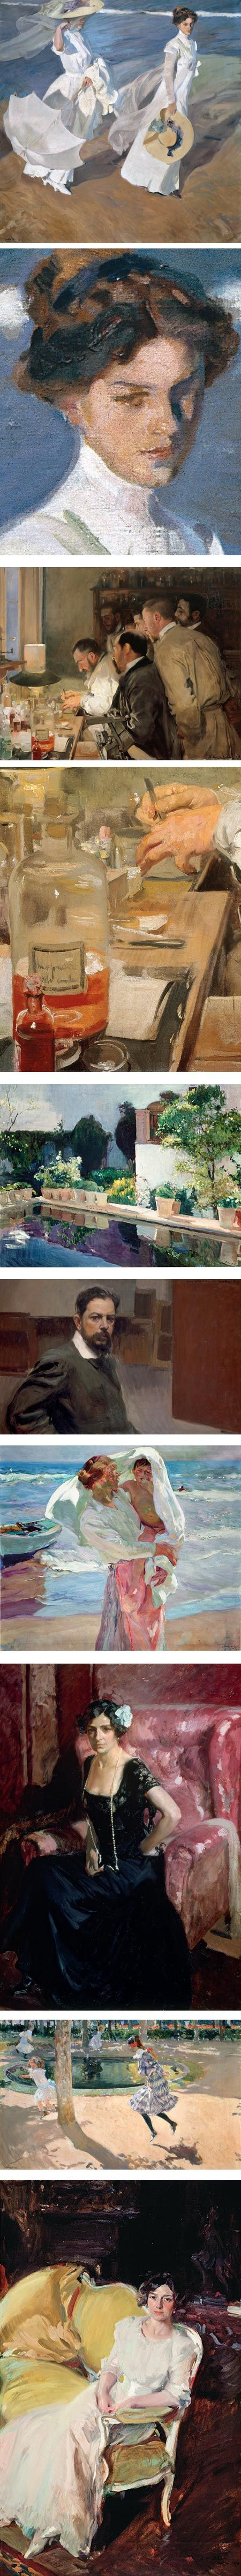 Museo Sorolla on Google Art Project; Joaquin Sorolla y Bastida.